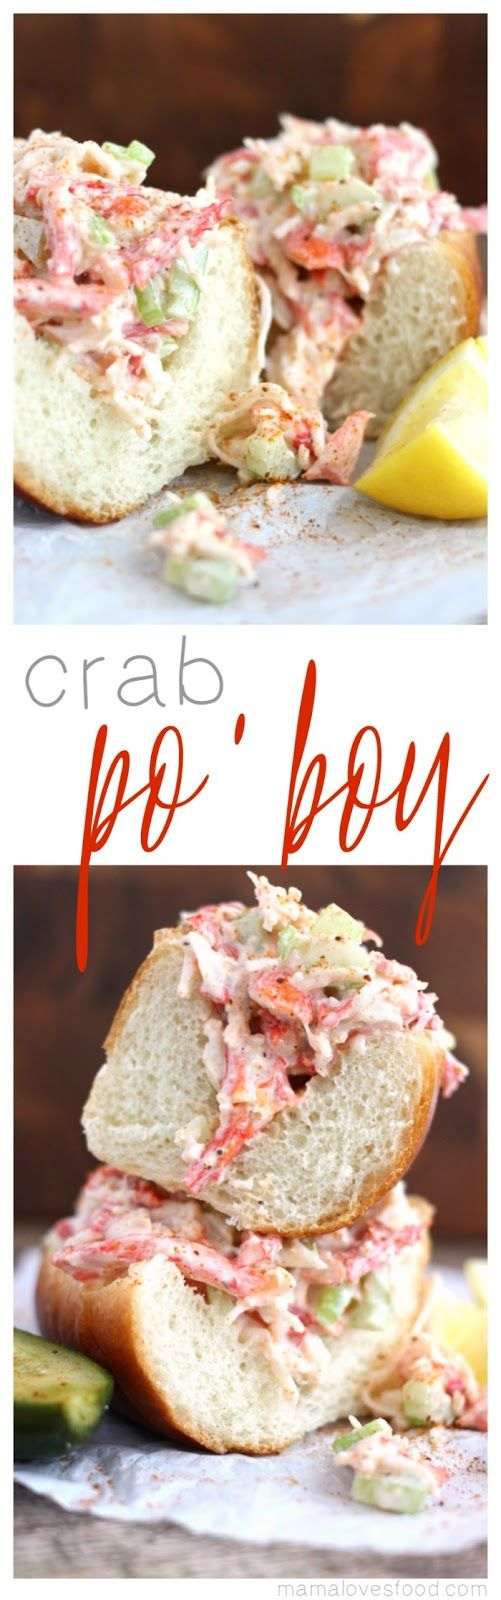 Crab Po'boy Recipe #MealInspirations #ad